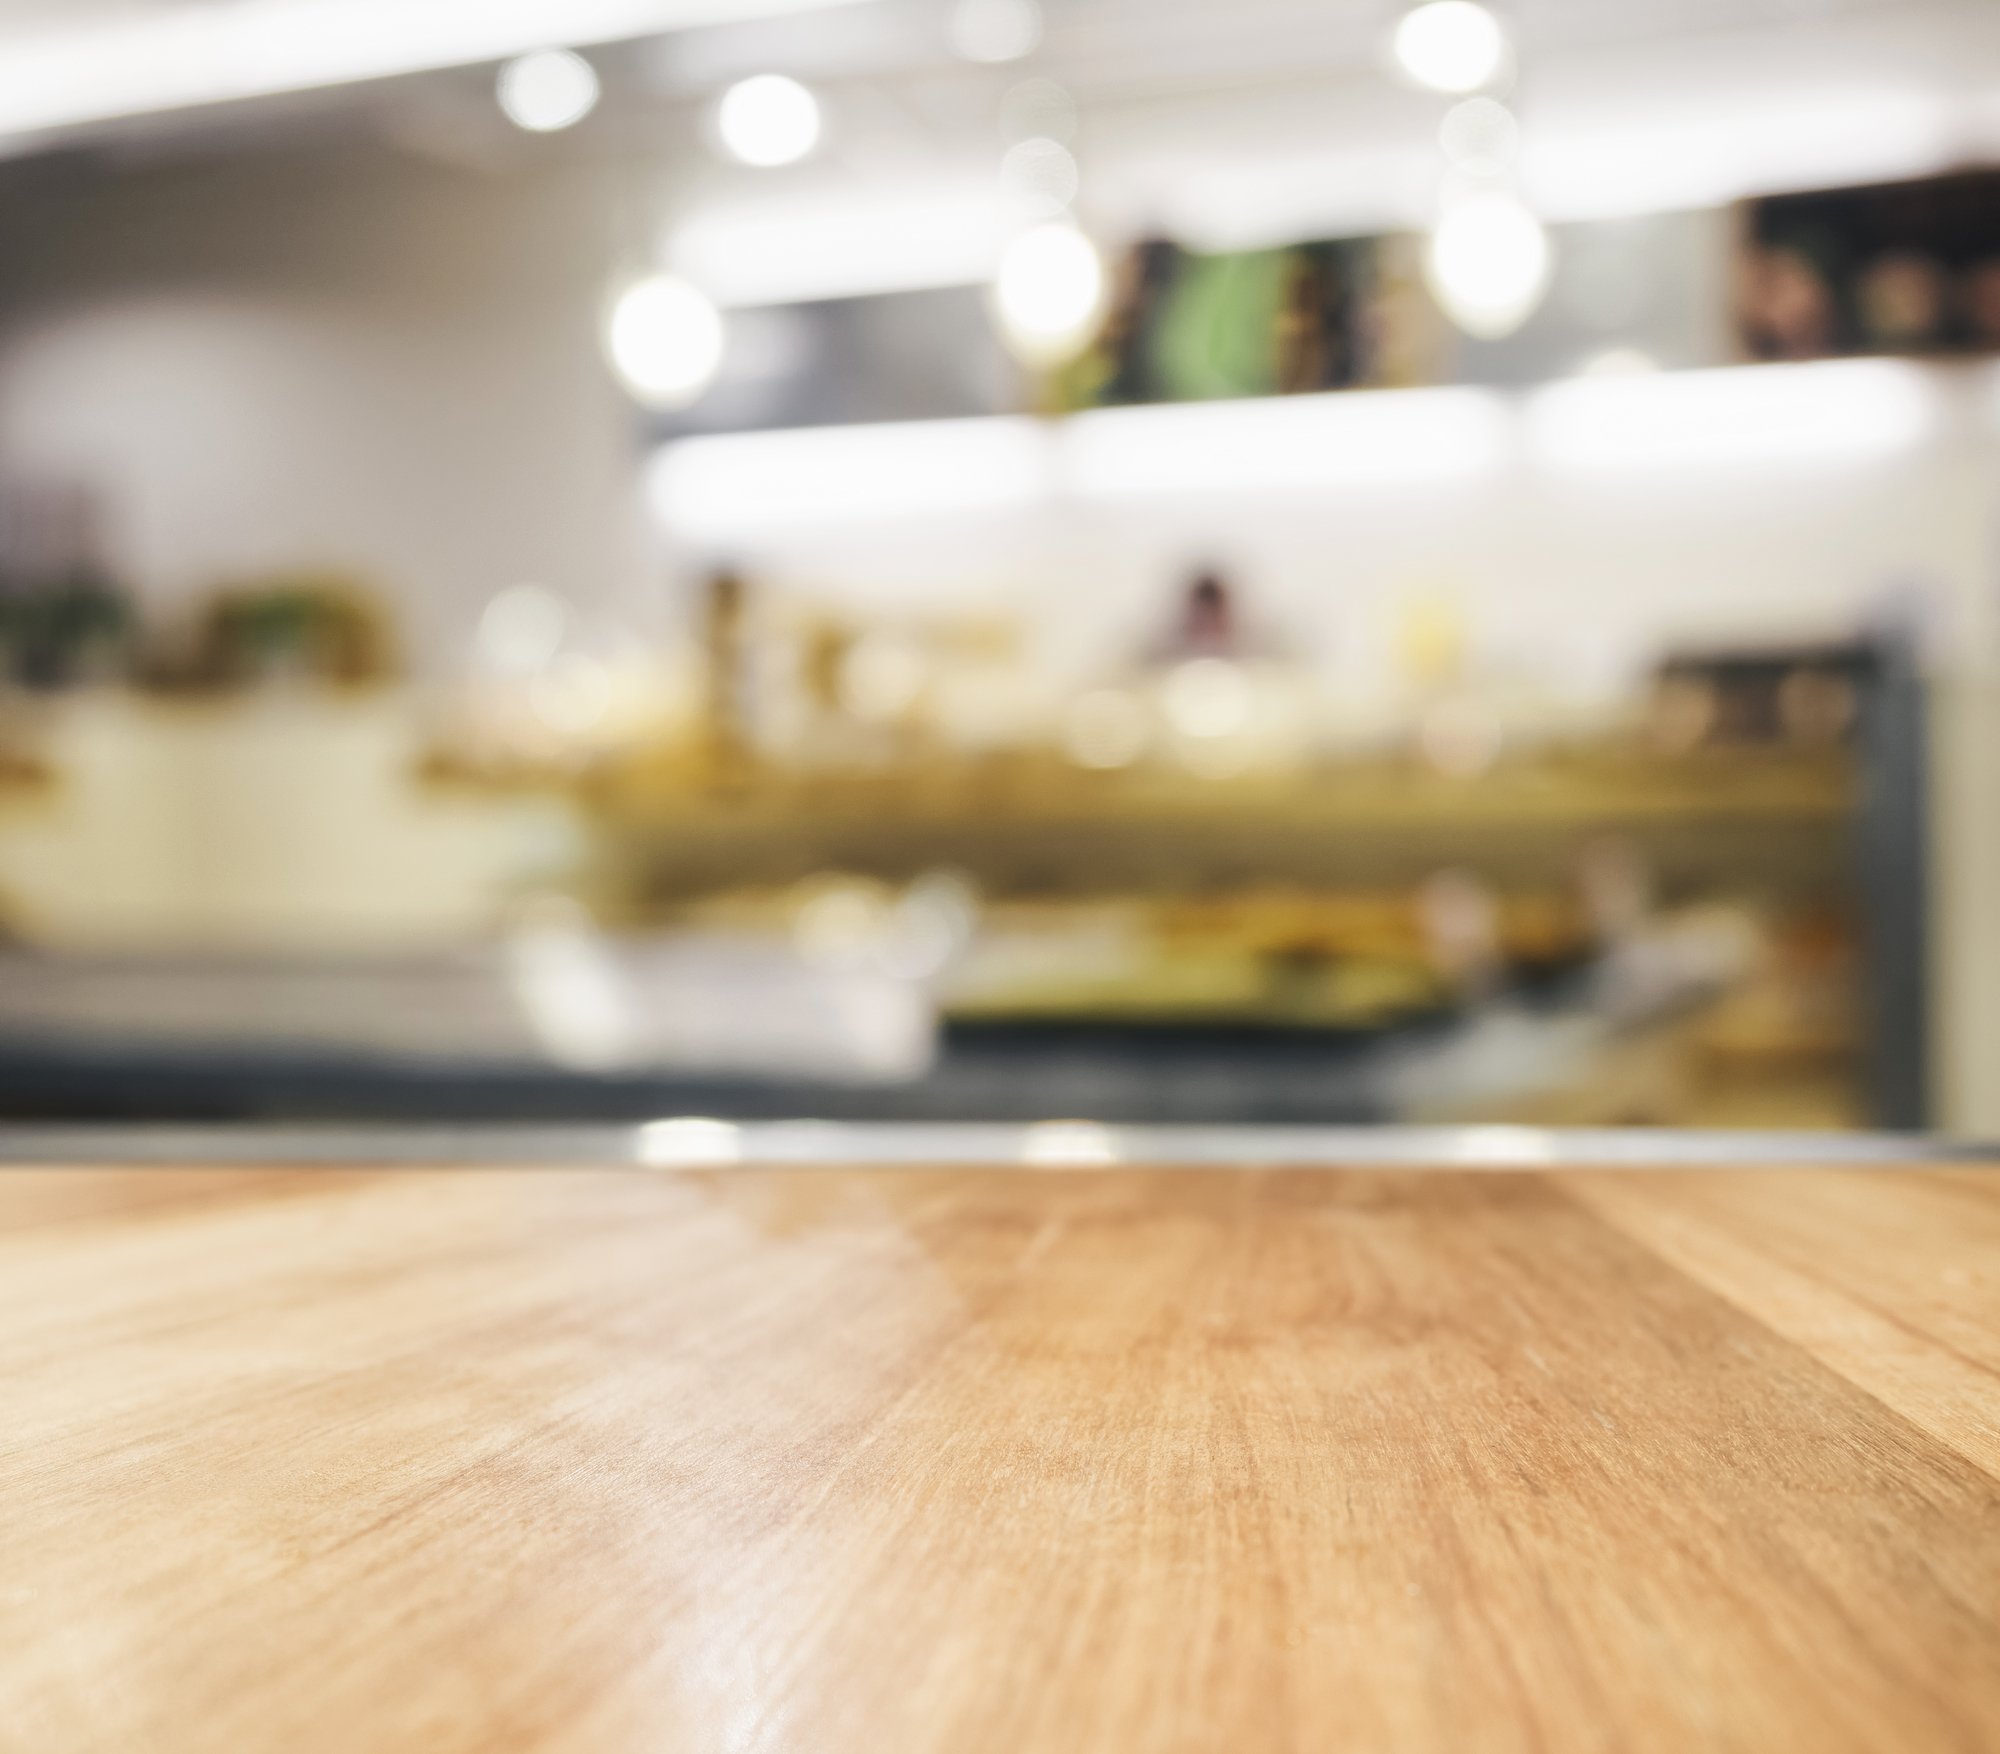 Table Top With Blurred Kitchen Interior Background